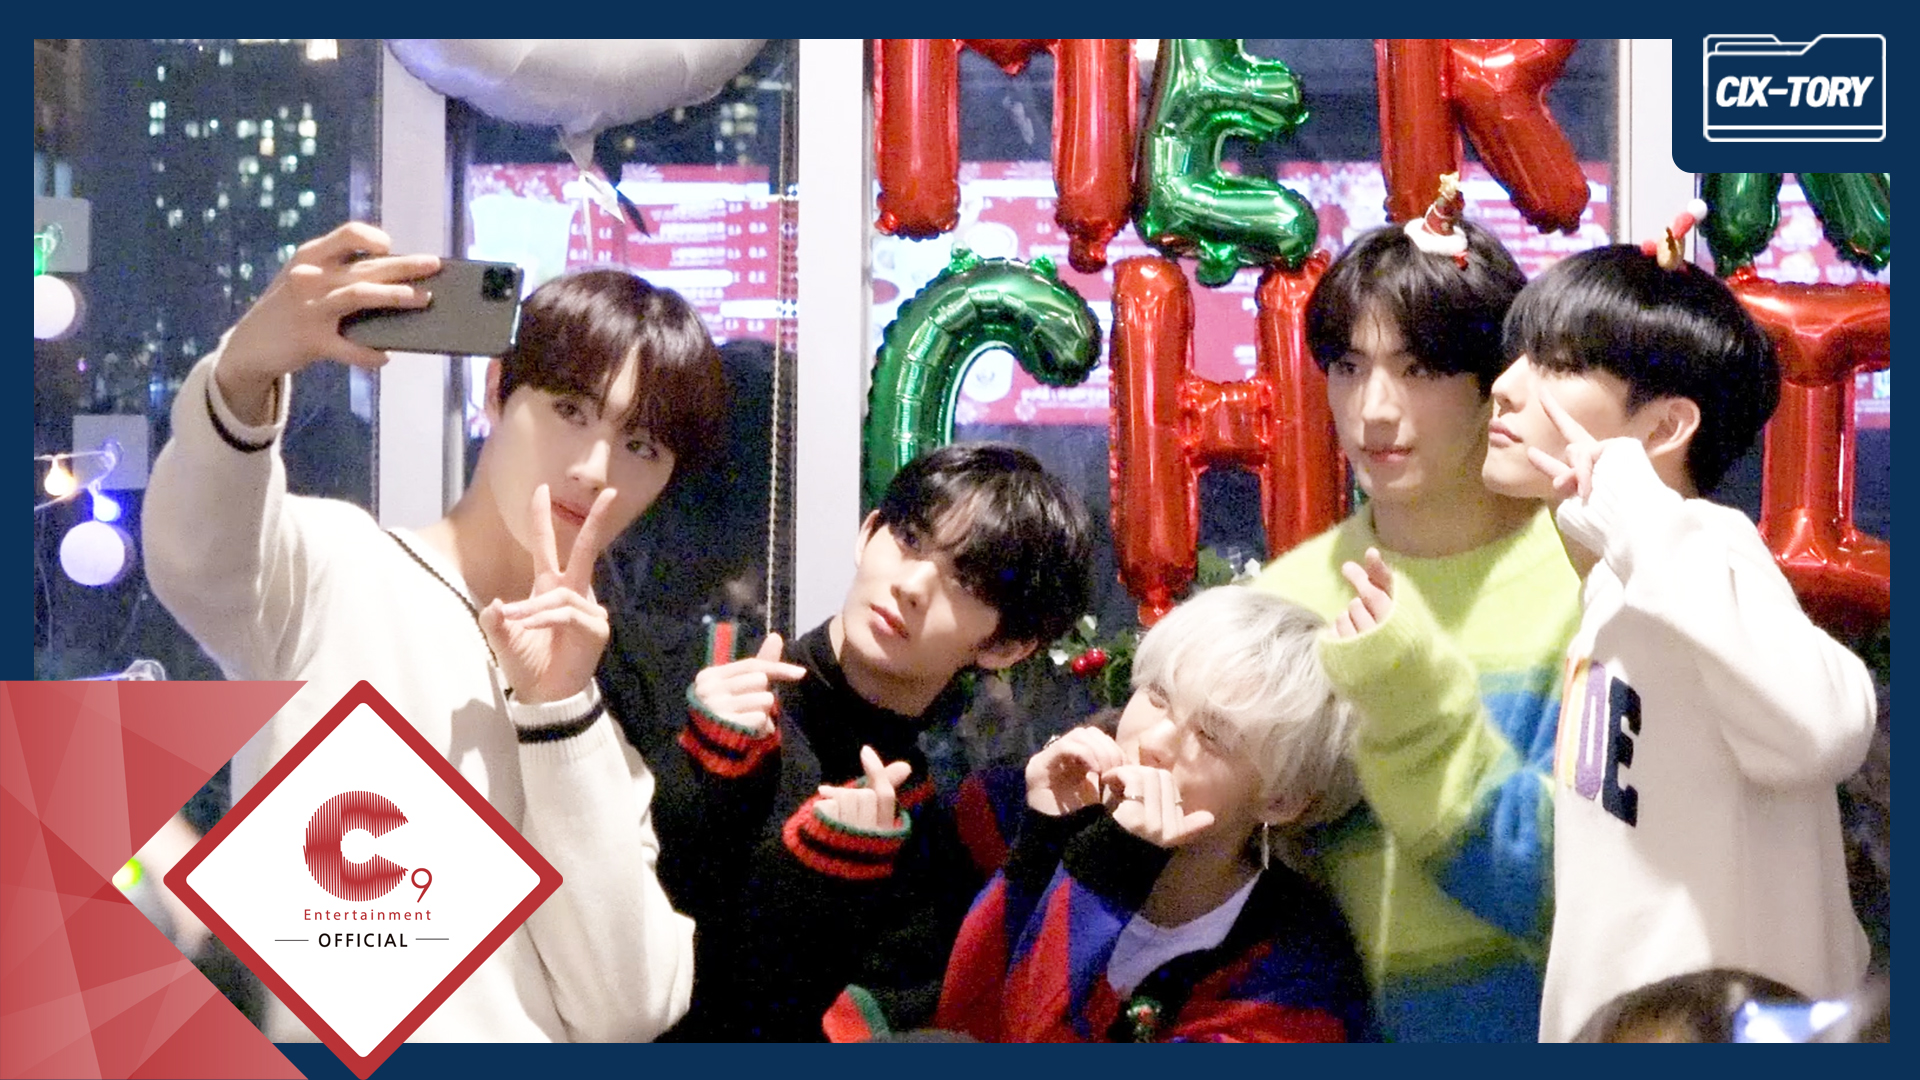 [CIX-tory] STORY.31 CIX 2019 Christmas with FIX